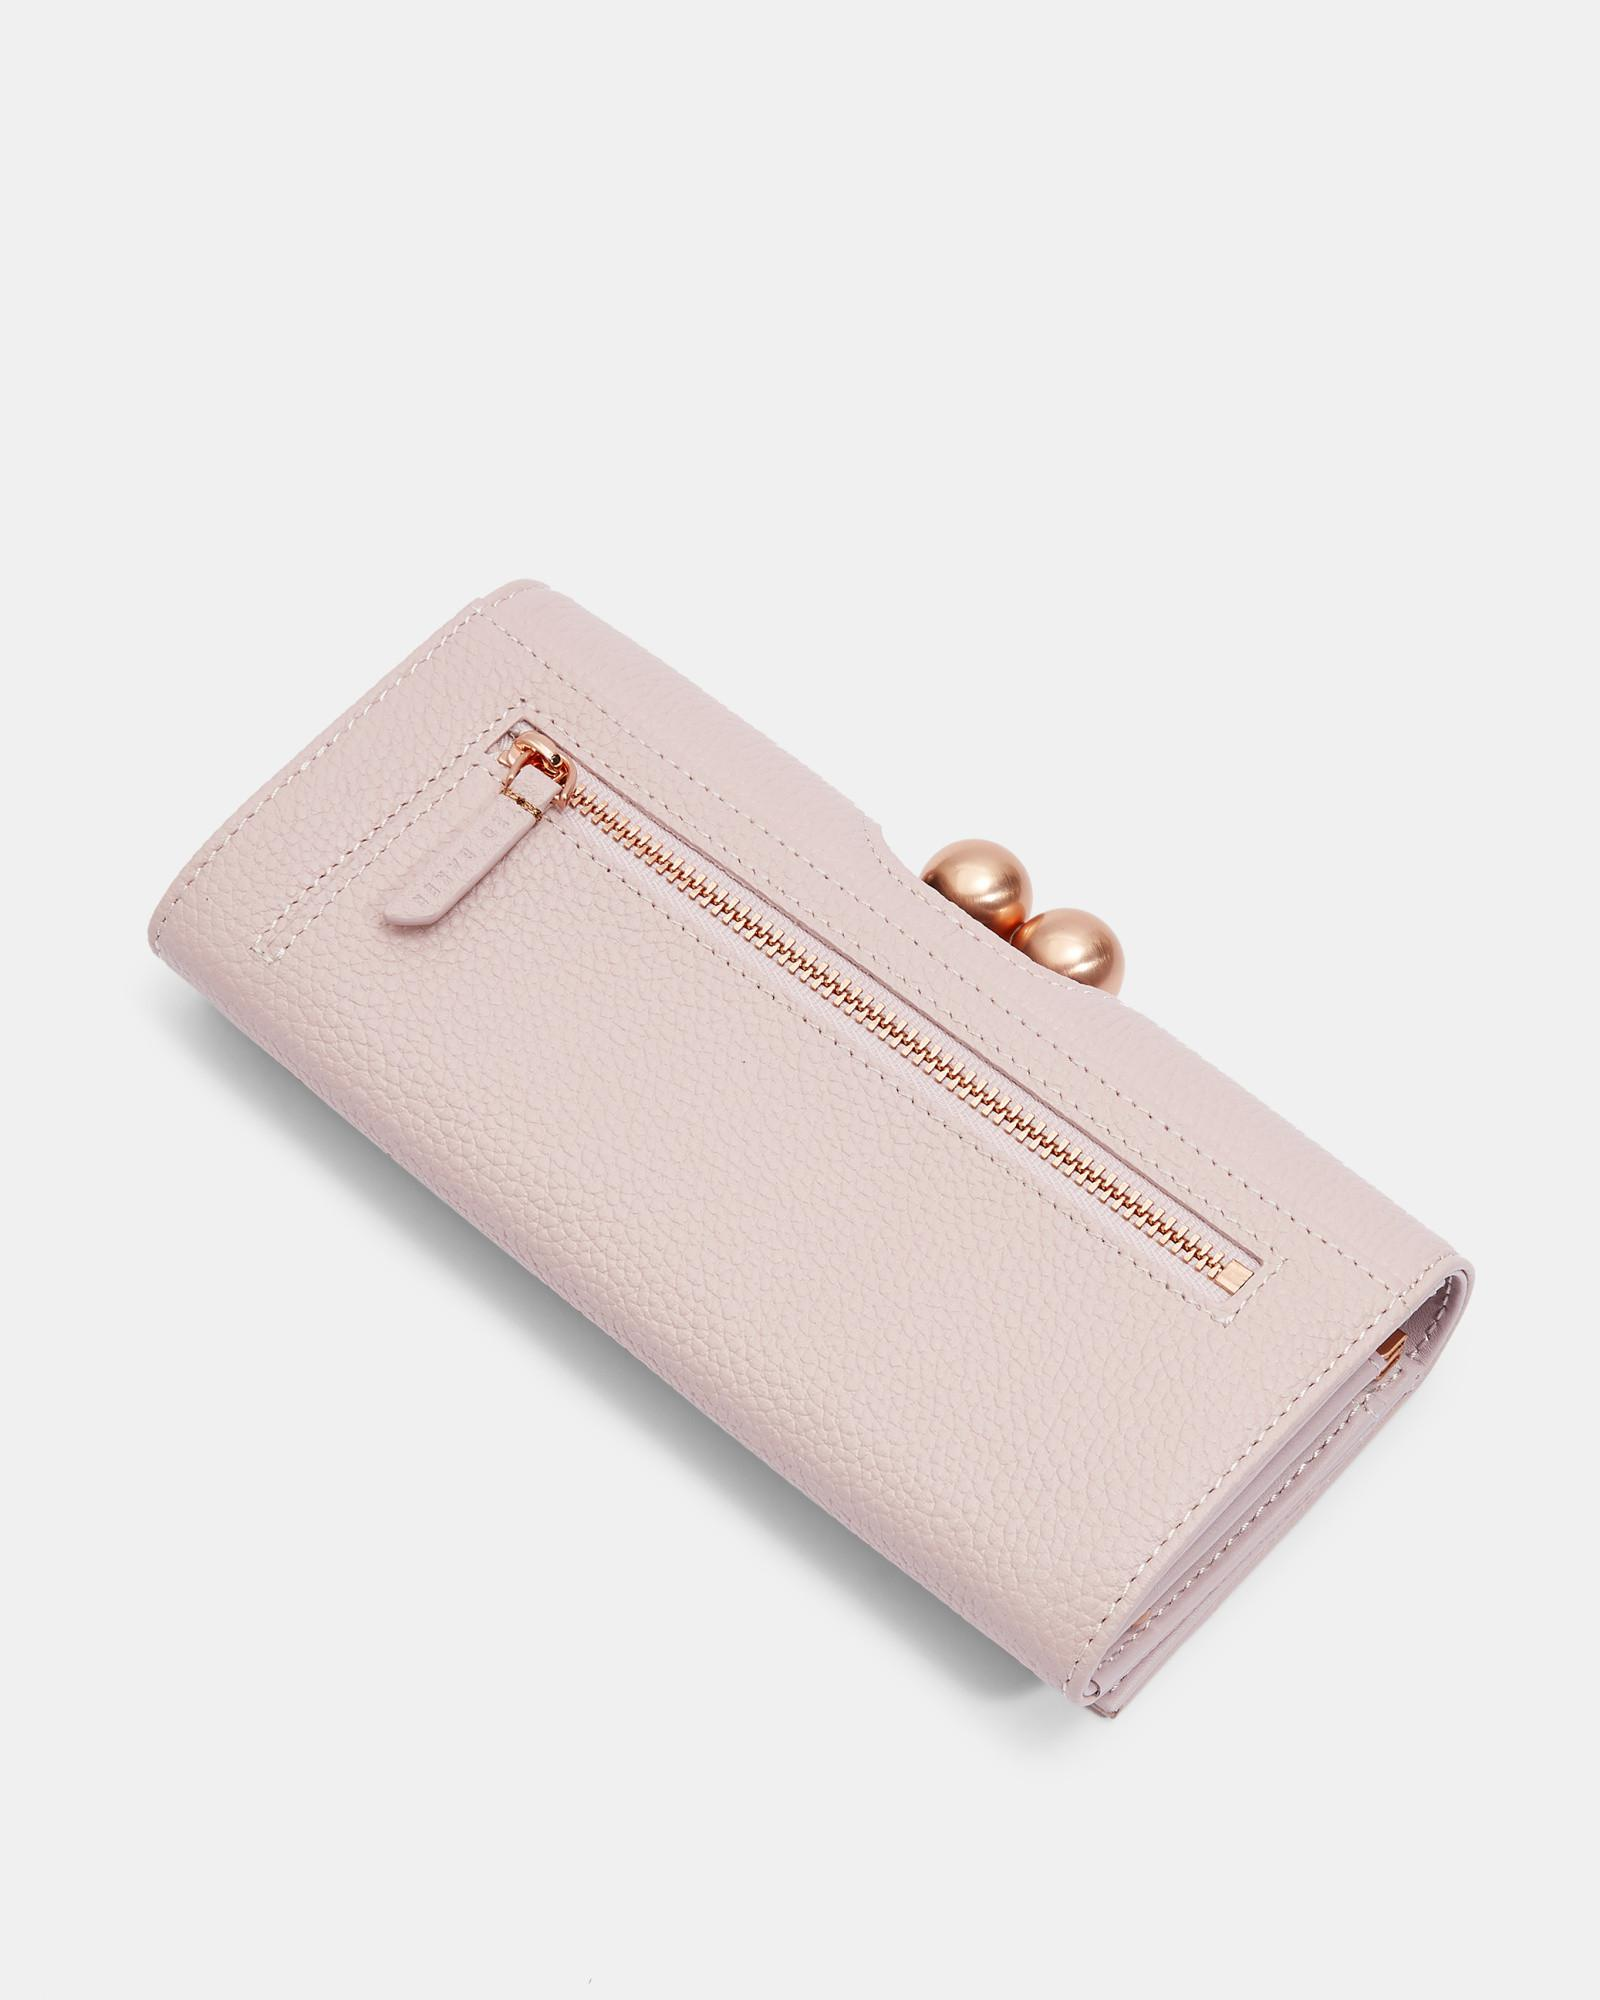 88ab8a452 Ted Baker Scripted Leather Bobble Matinee Purse in Pink - Lyst